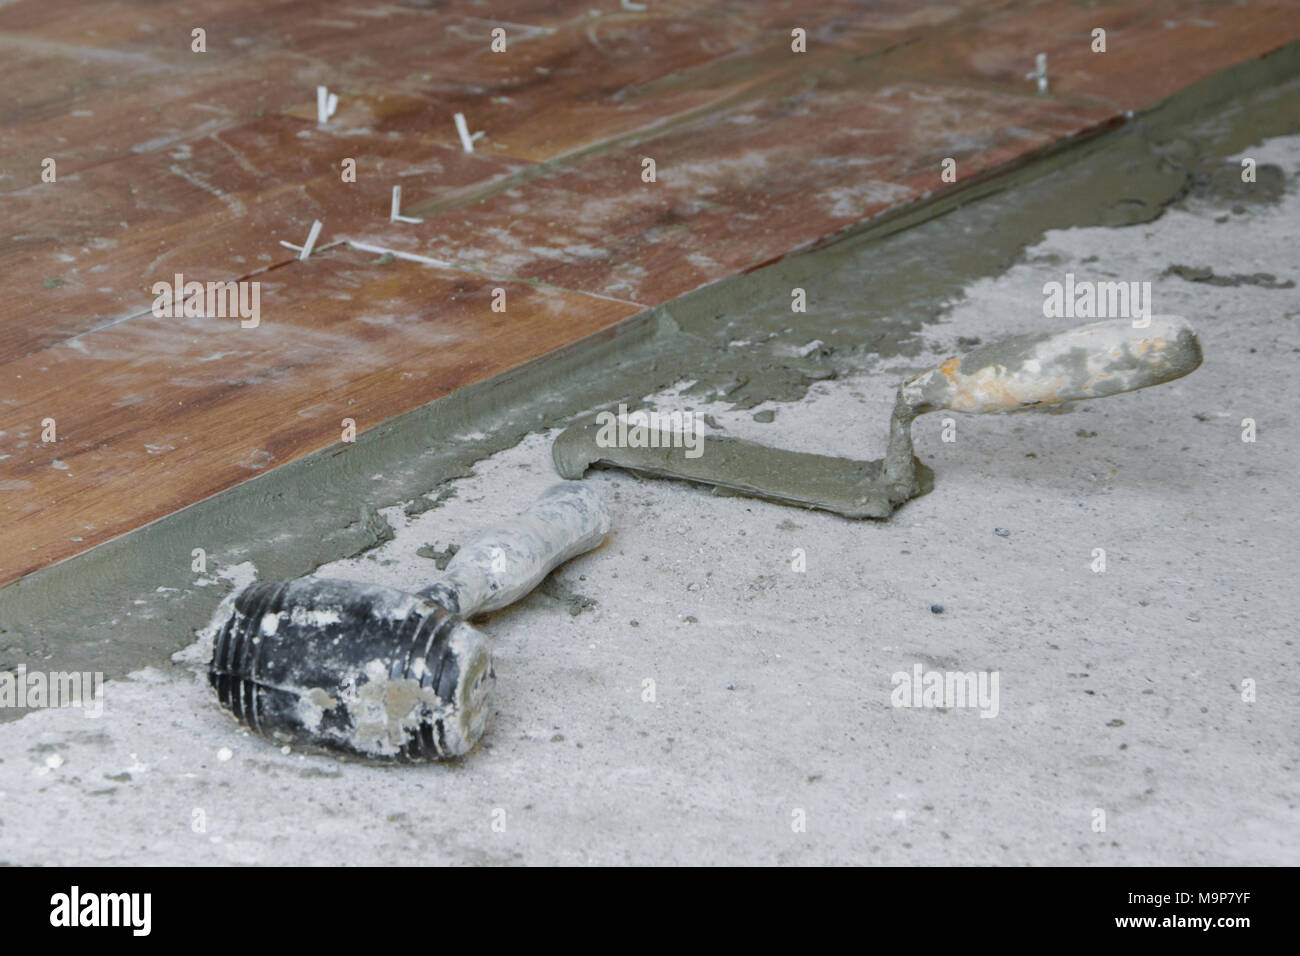 Ceramic tiles tools tiler floor stock photos ceramic tiles tools tools for laying tiles on floor at construction site industry building concept stock image dailygadgetfo Image collections